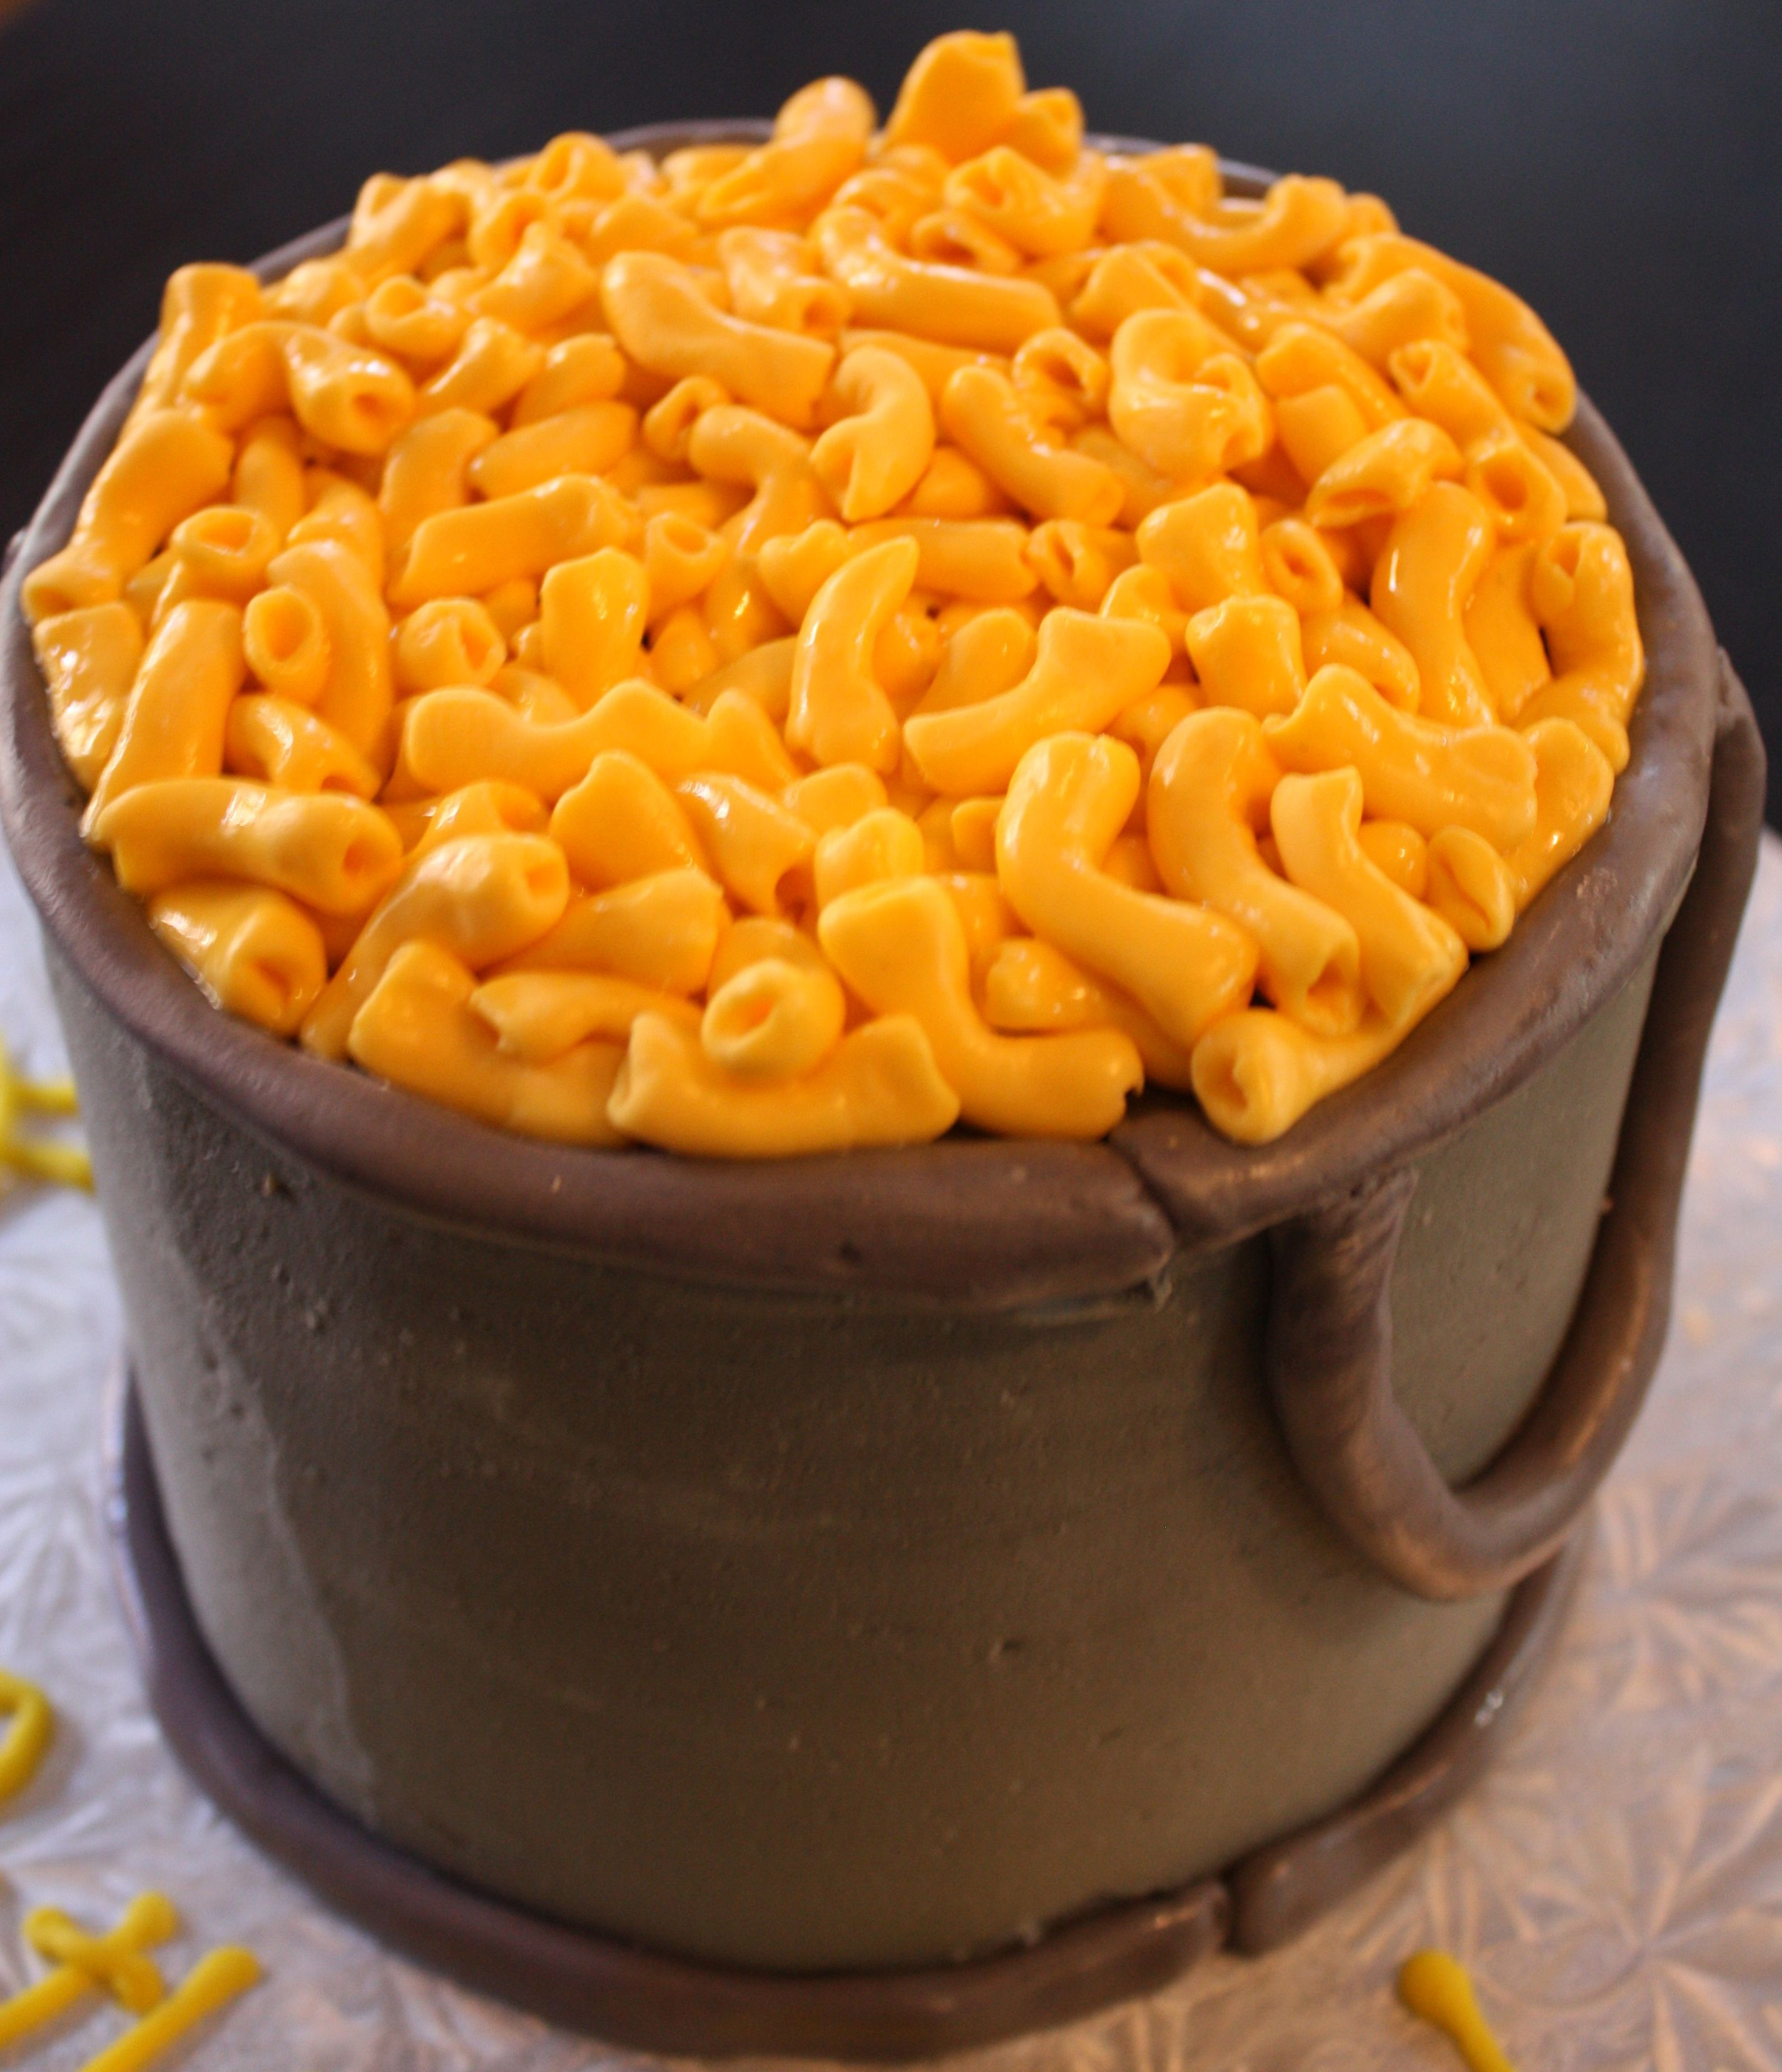 A Mac N Cheese Birthday Cake Amazing Cakes Novelty Cakes